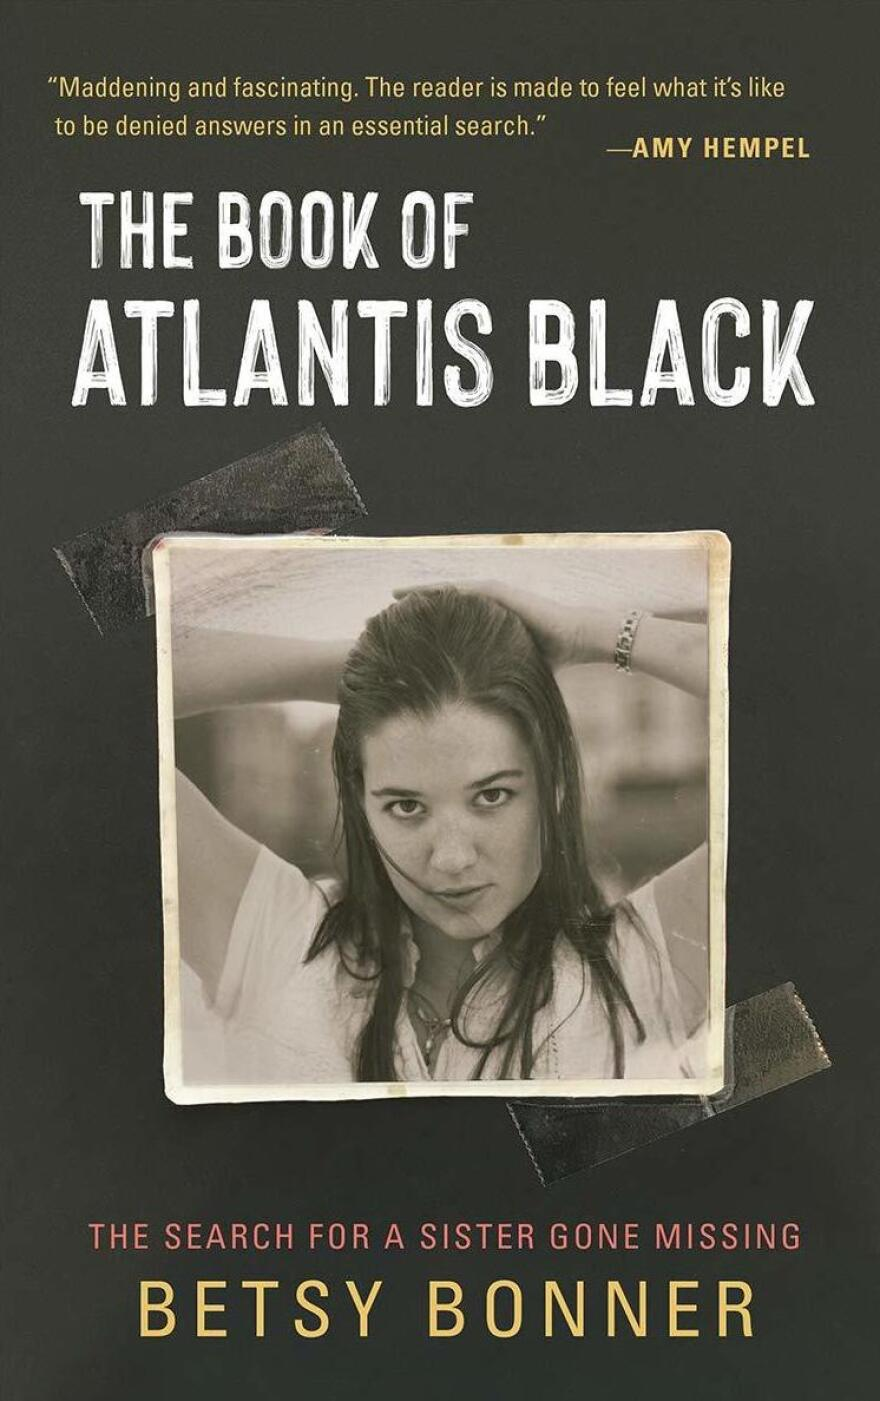 <em>The Book of Atlantis Black: The Search for a Sister Gone Missing</em>, by Betsy Bonner